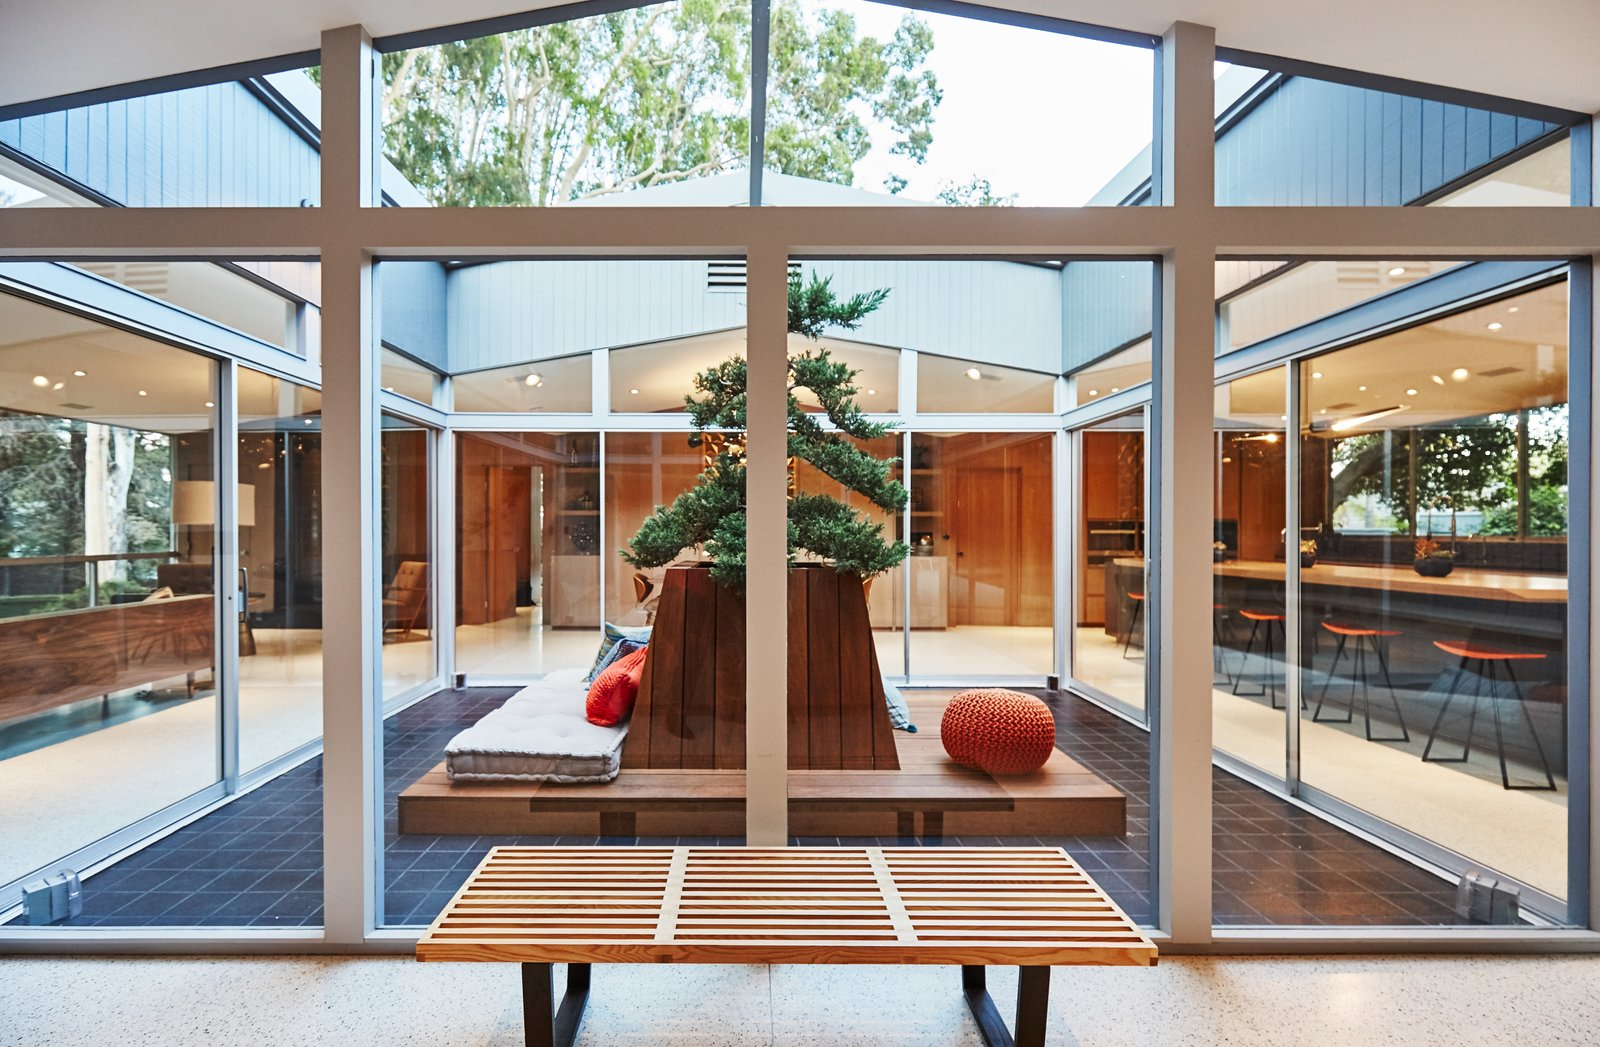 Outdoor, Planters Patio, Porch, Deck, and Wood Patio, Porch, Deck  Photo 4 of 10 in A Hexagonal Midcentury Residence in Southern California Offered at $2.89M